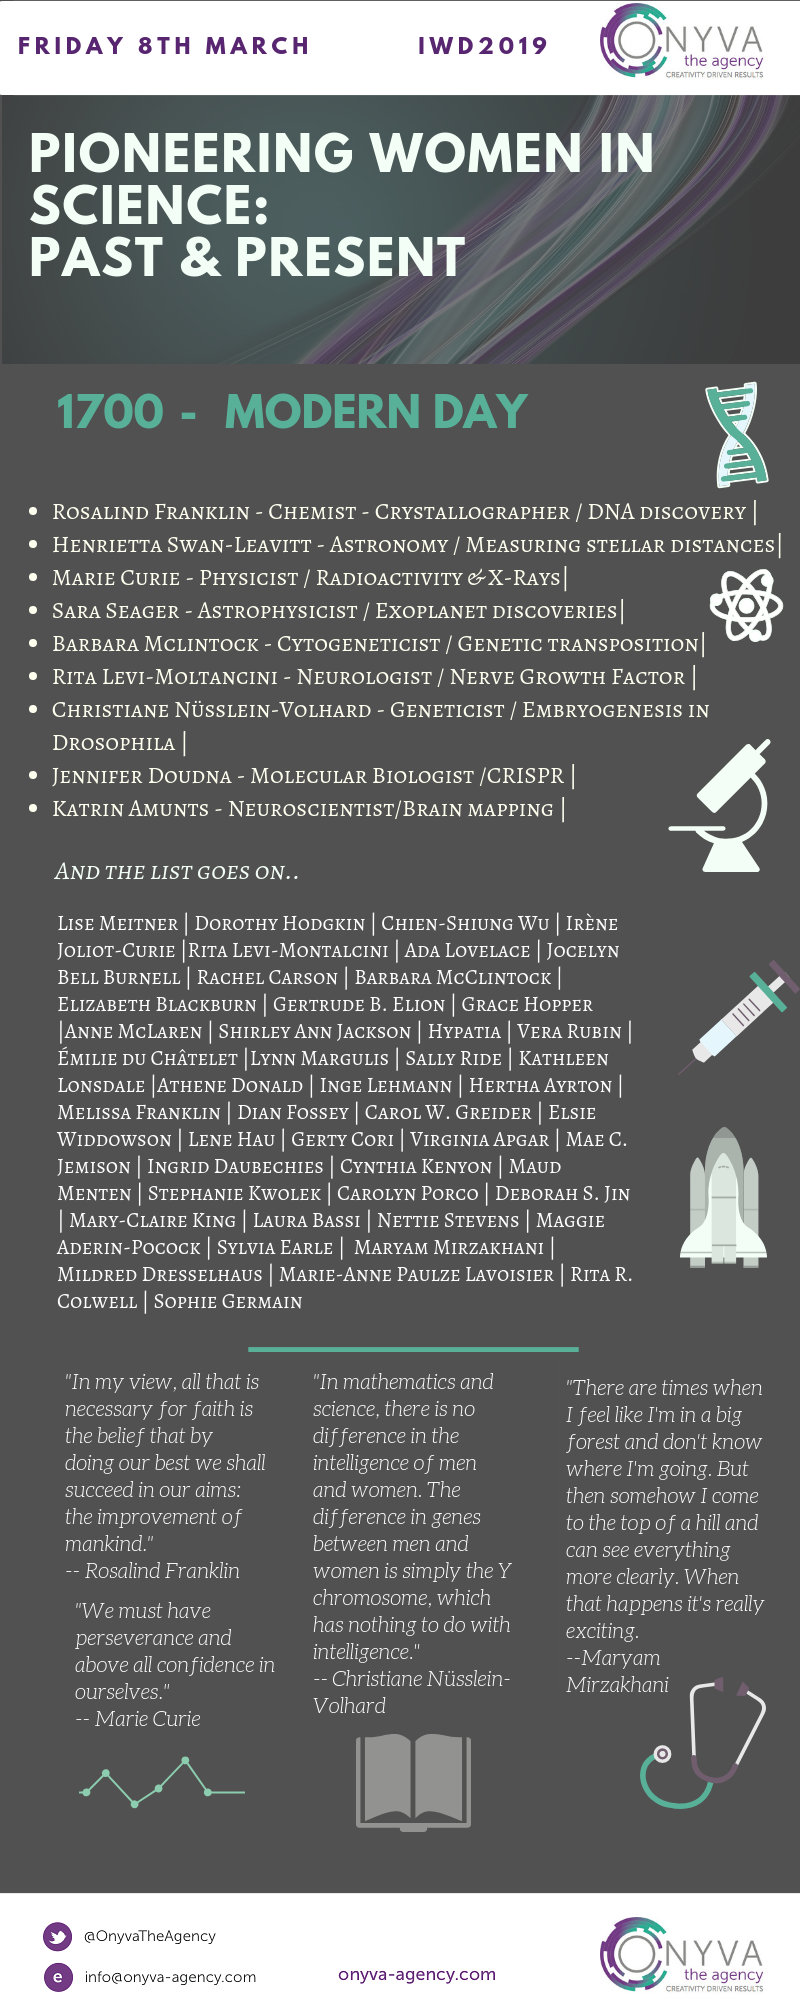 #IWD2019 Women in Science 2019 infographic